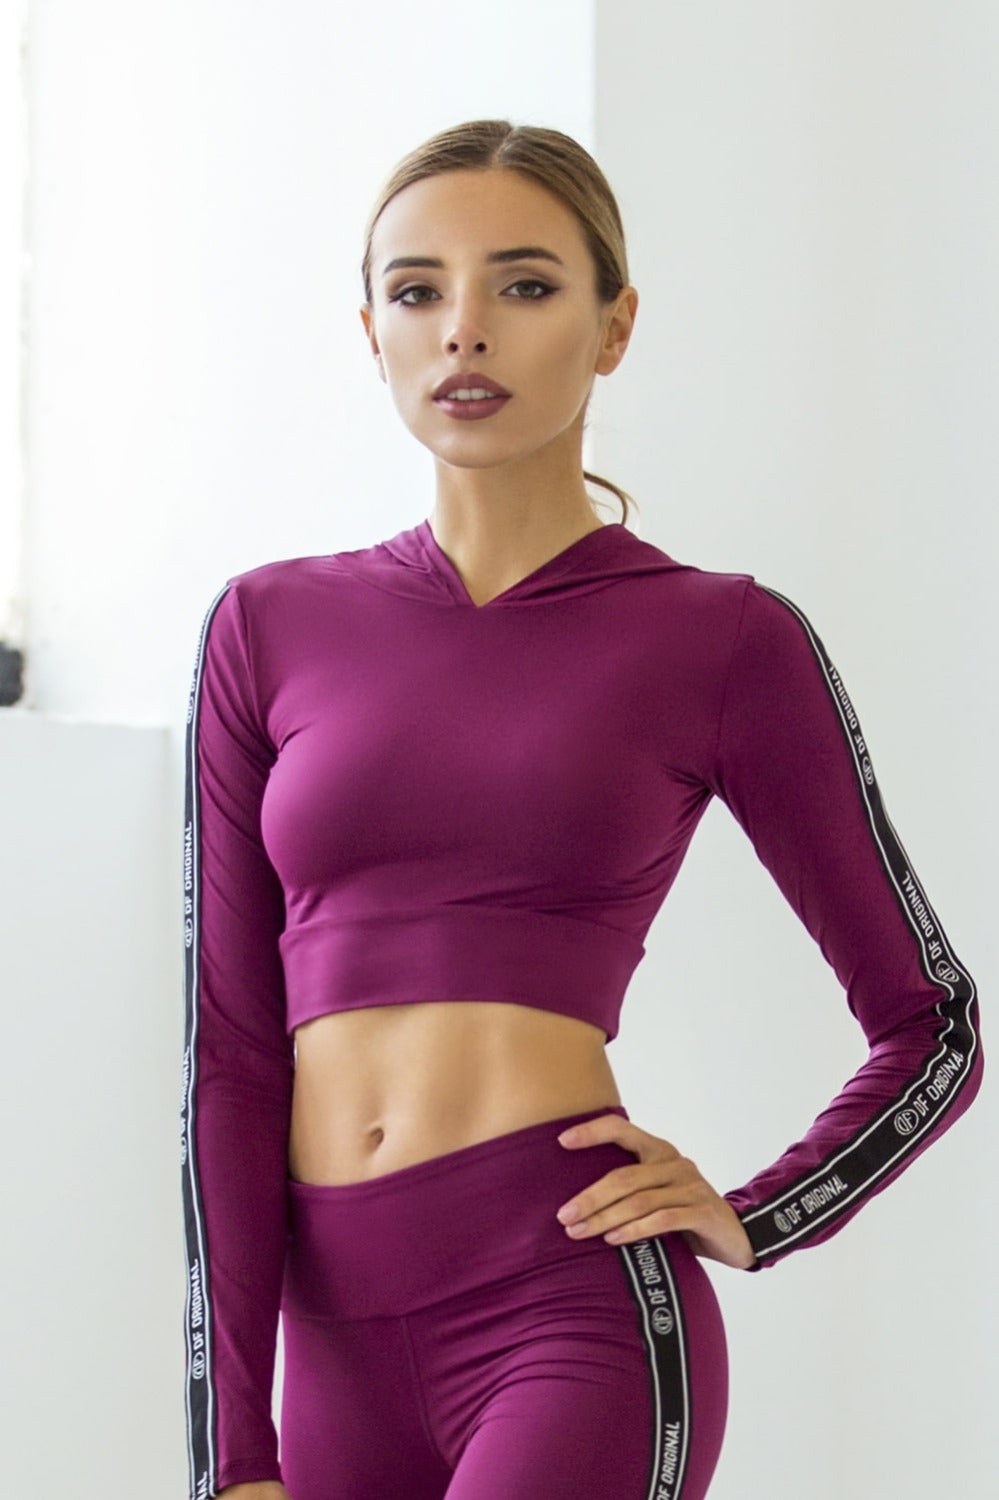 DF ORIGINAL VOGUE BRA HOODIE - Designed for Fitness